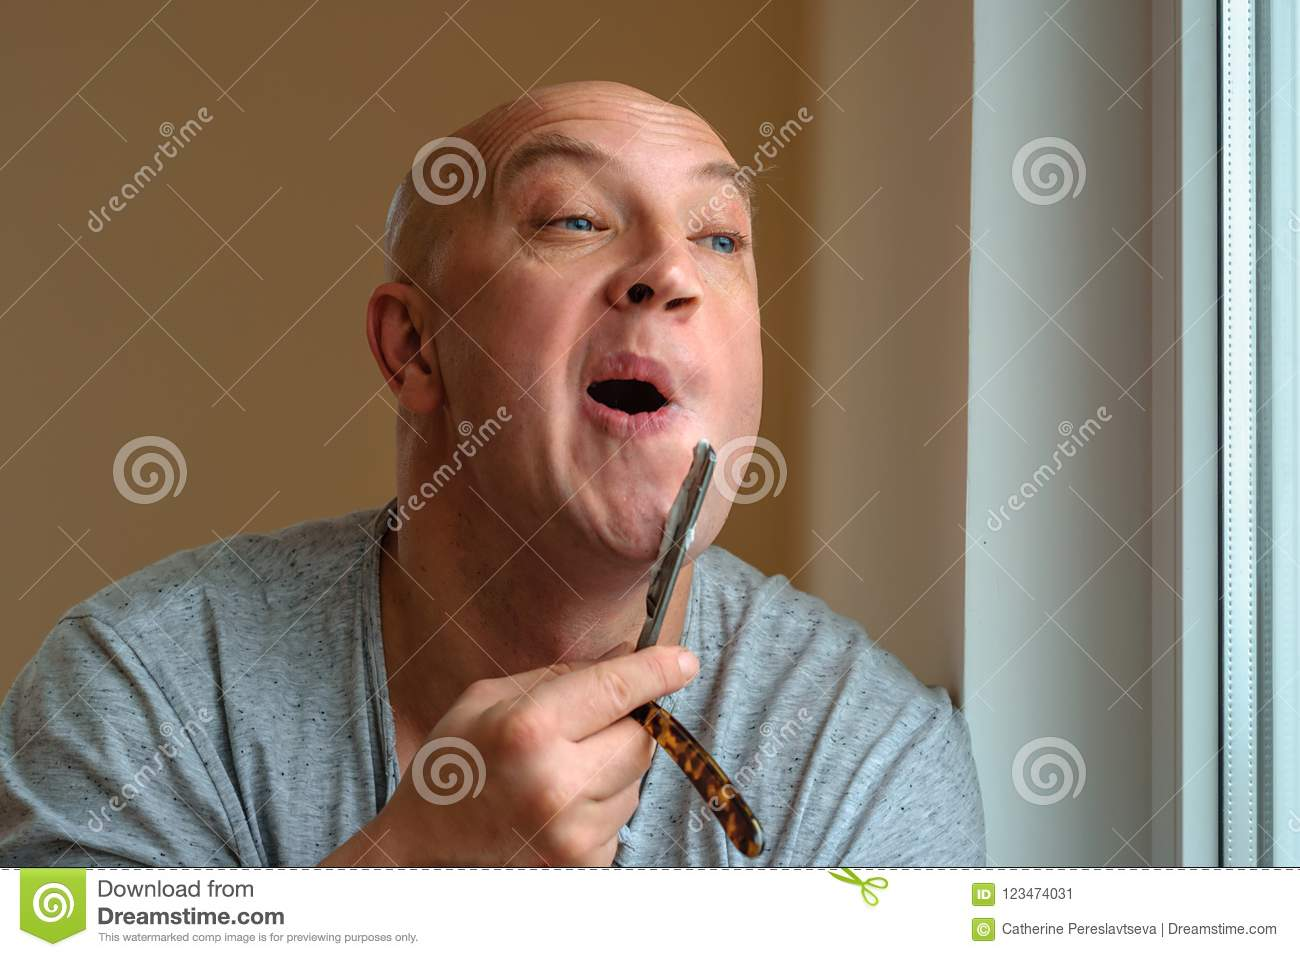 A man shaves with a straight razor